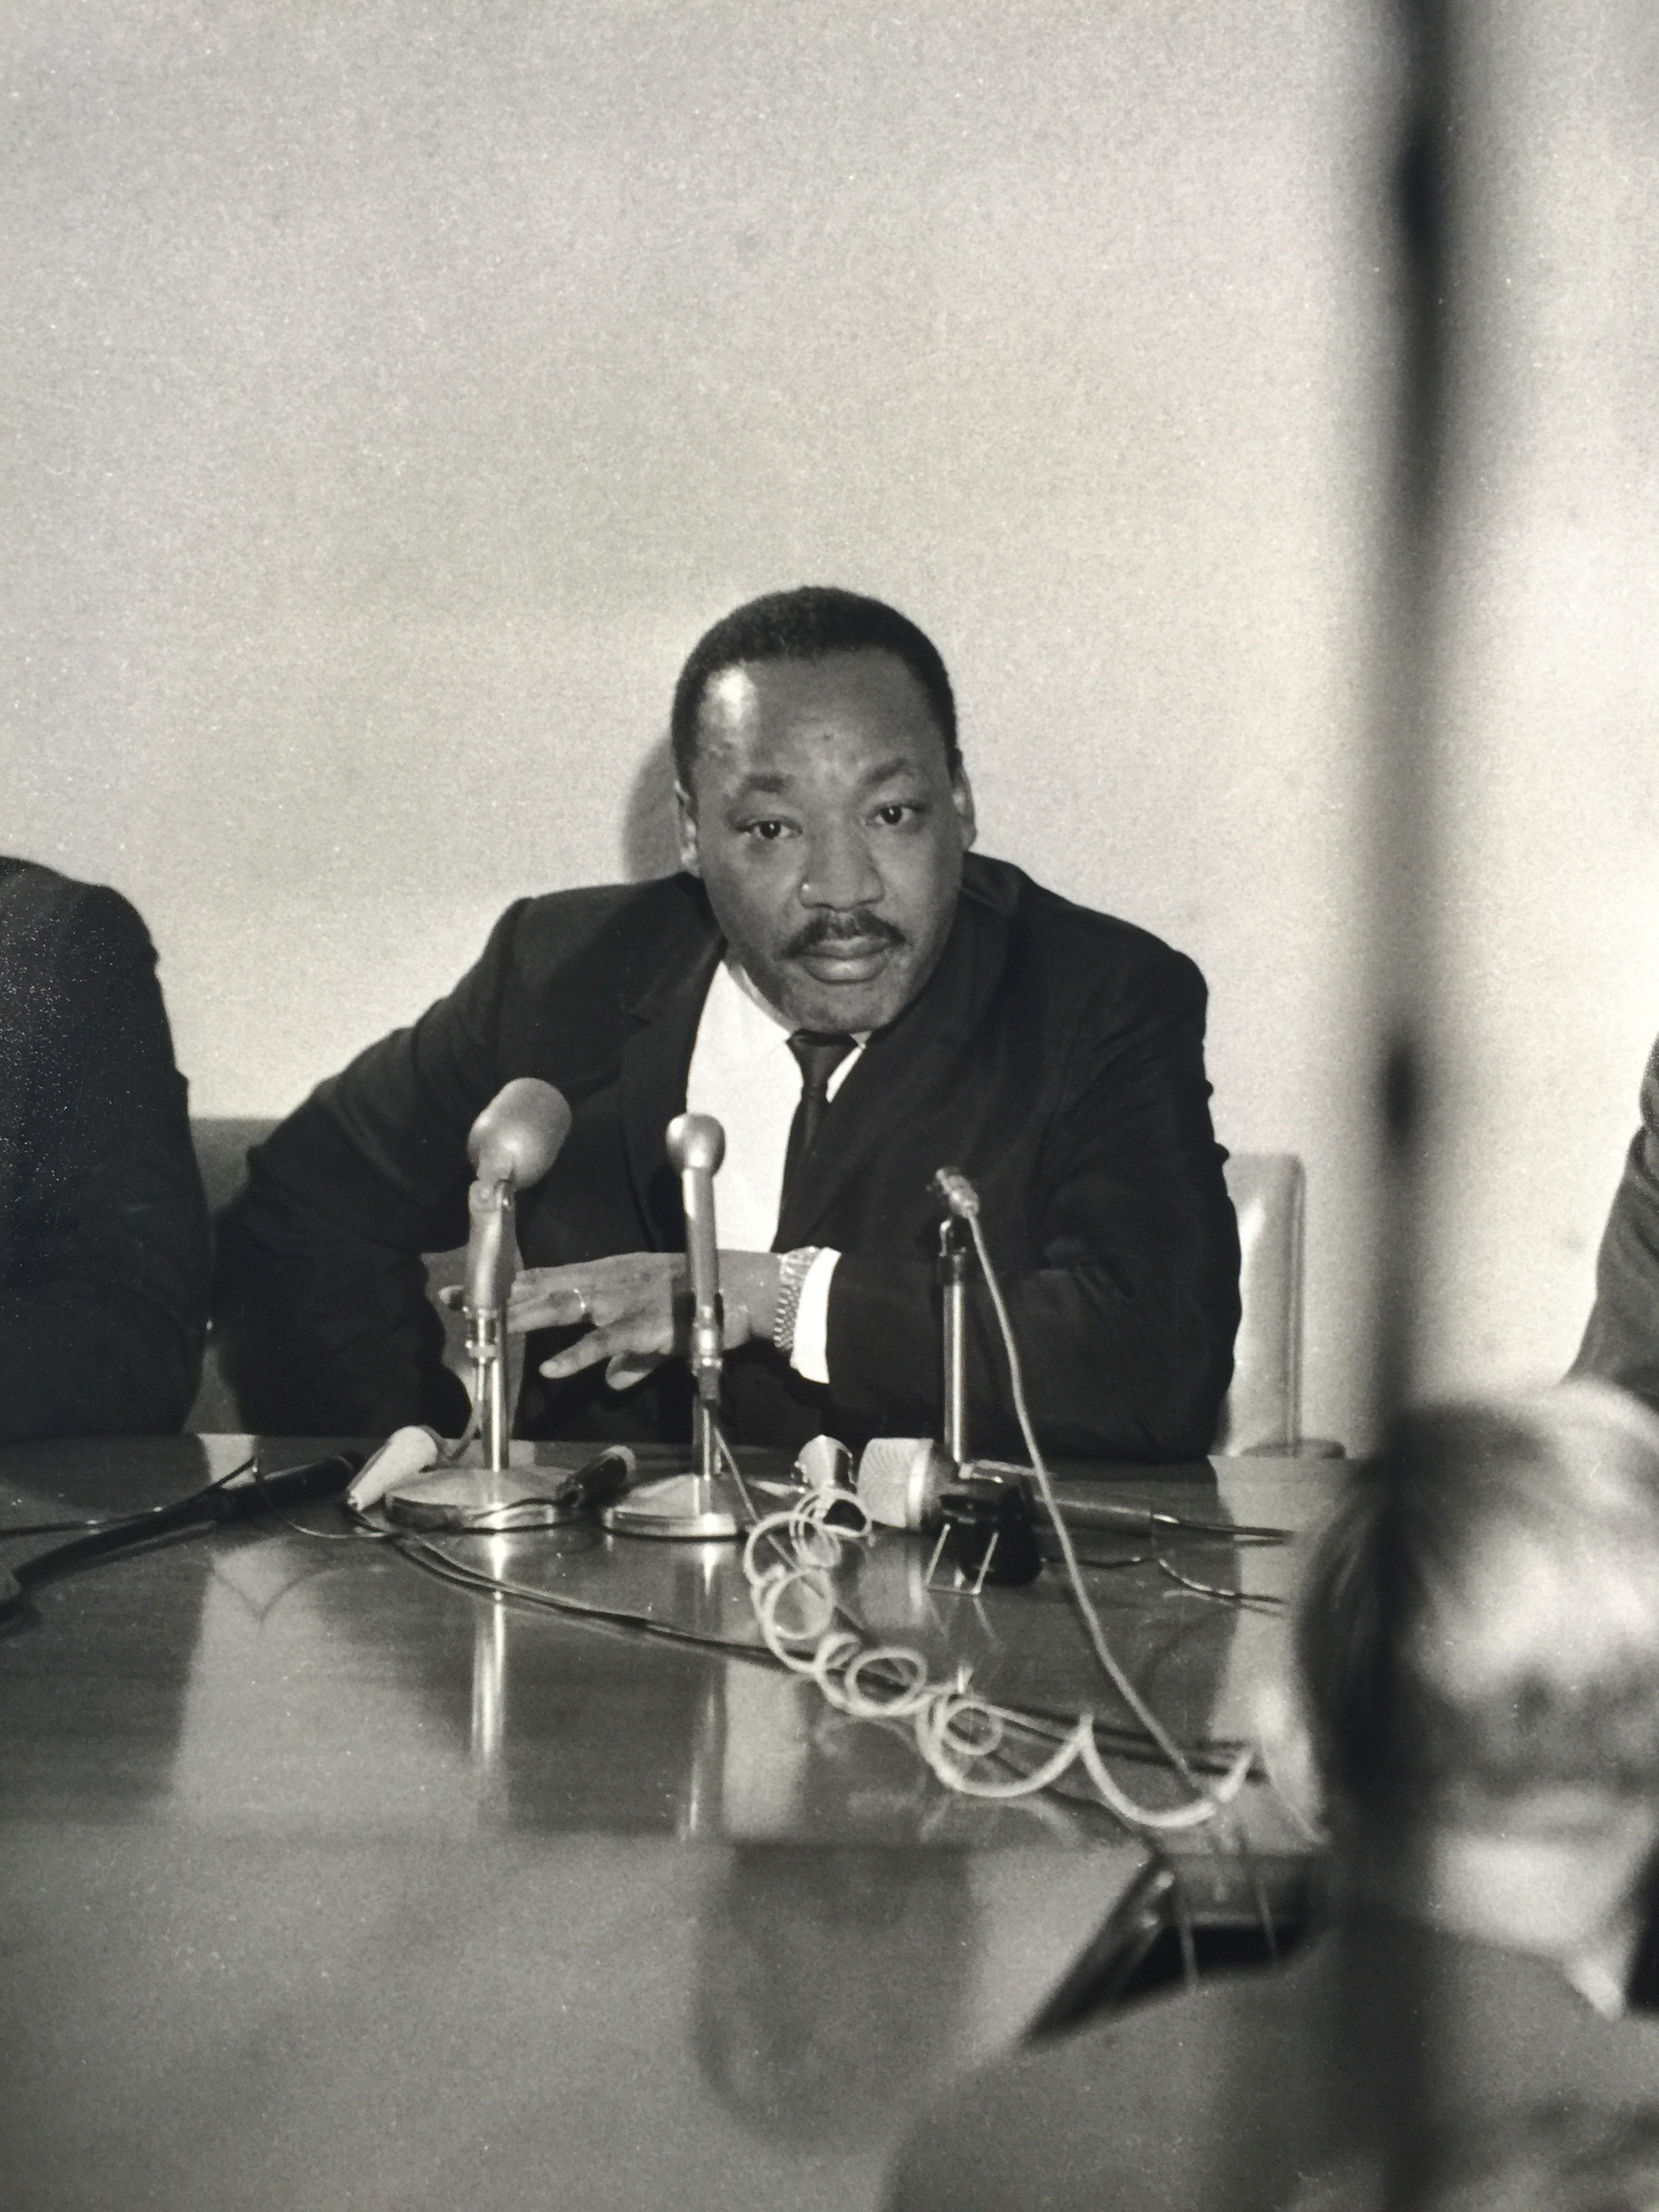 "<div class=""meta image-caption""><div class=""origin-logo origin-image ktrk""><span>KTRK</span></div><span class=""caption-text"">Dr. Martin Luther King Jr. makes appearance in Houston in 1967.</span></div>"